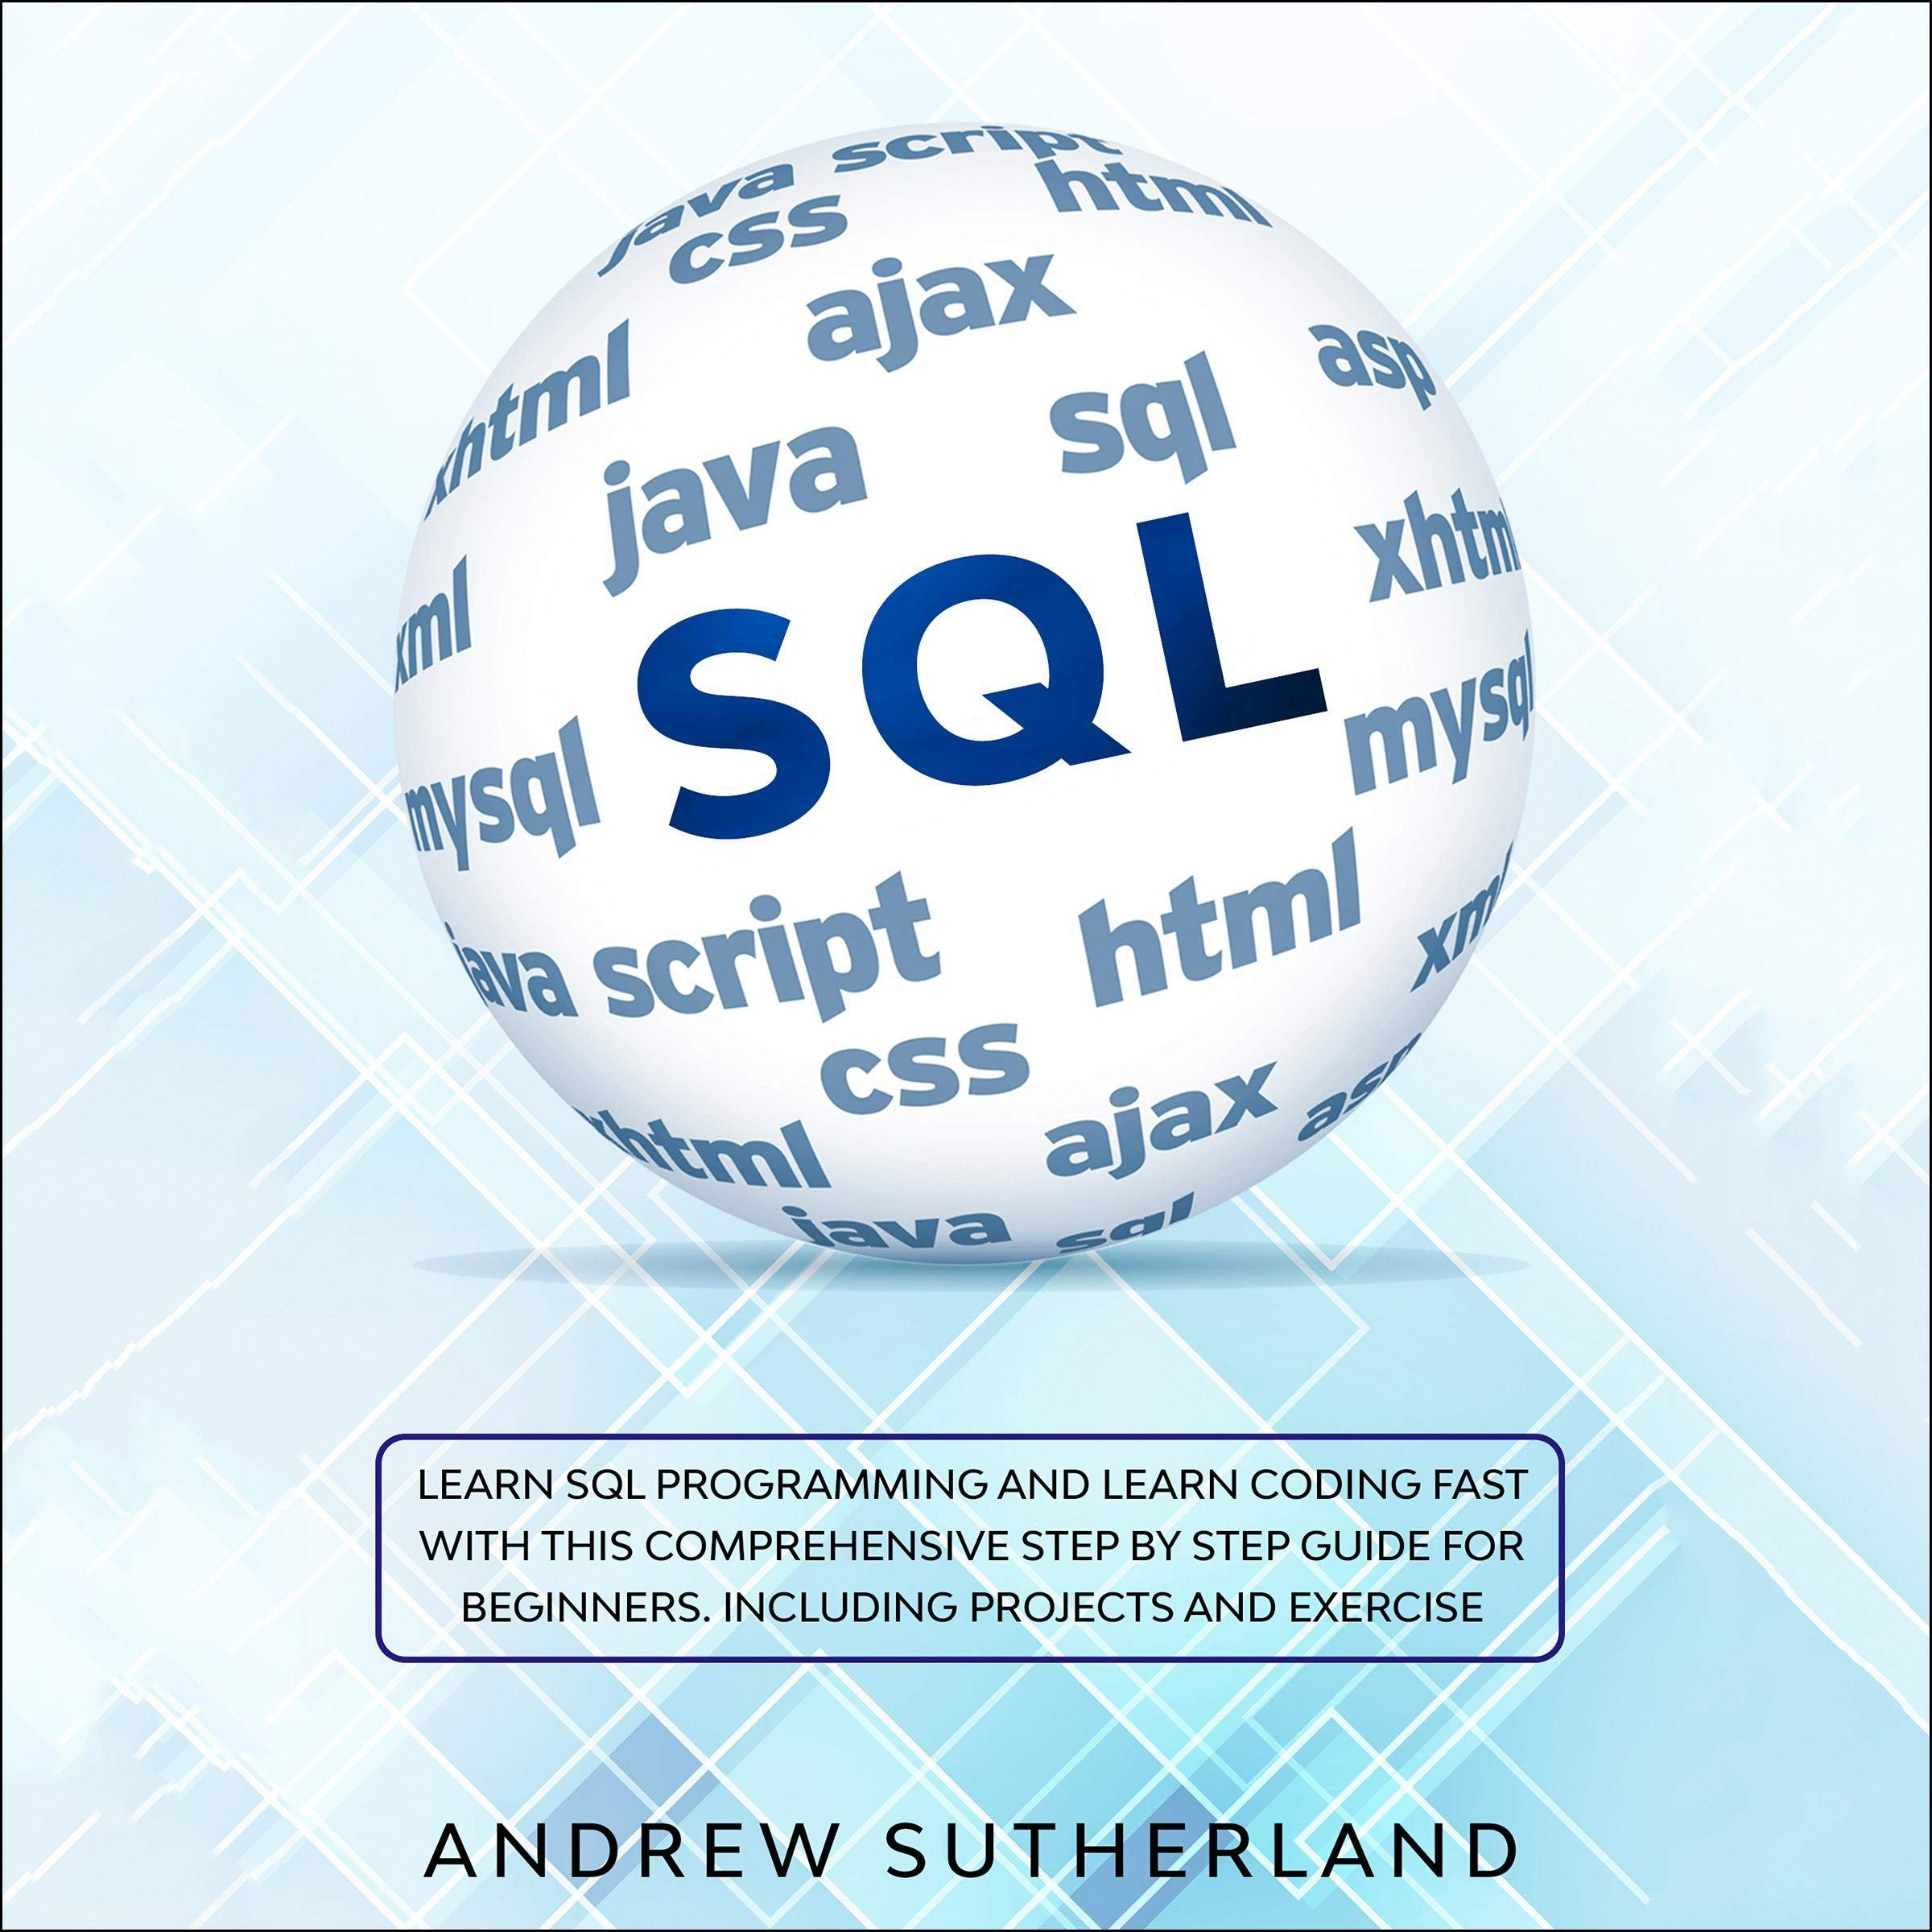 SQL: Learn SQL Programming and Learn Coding Fast with This Comprehensive Step by Step Guide for Beginners. Including Projects and Exercise